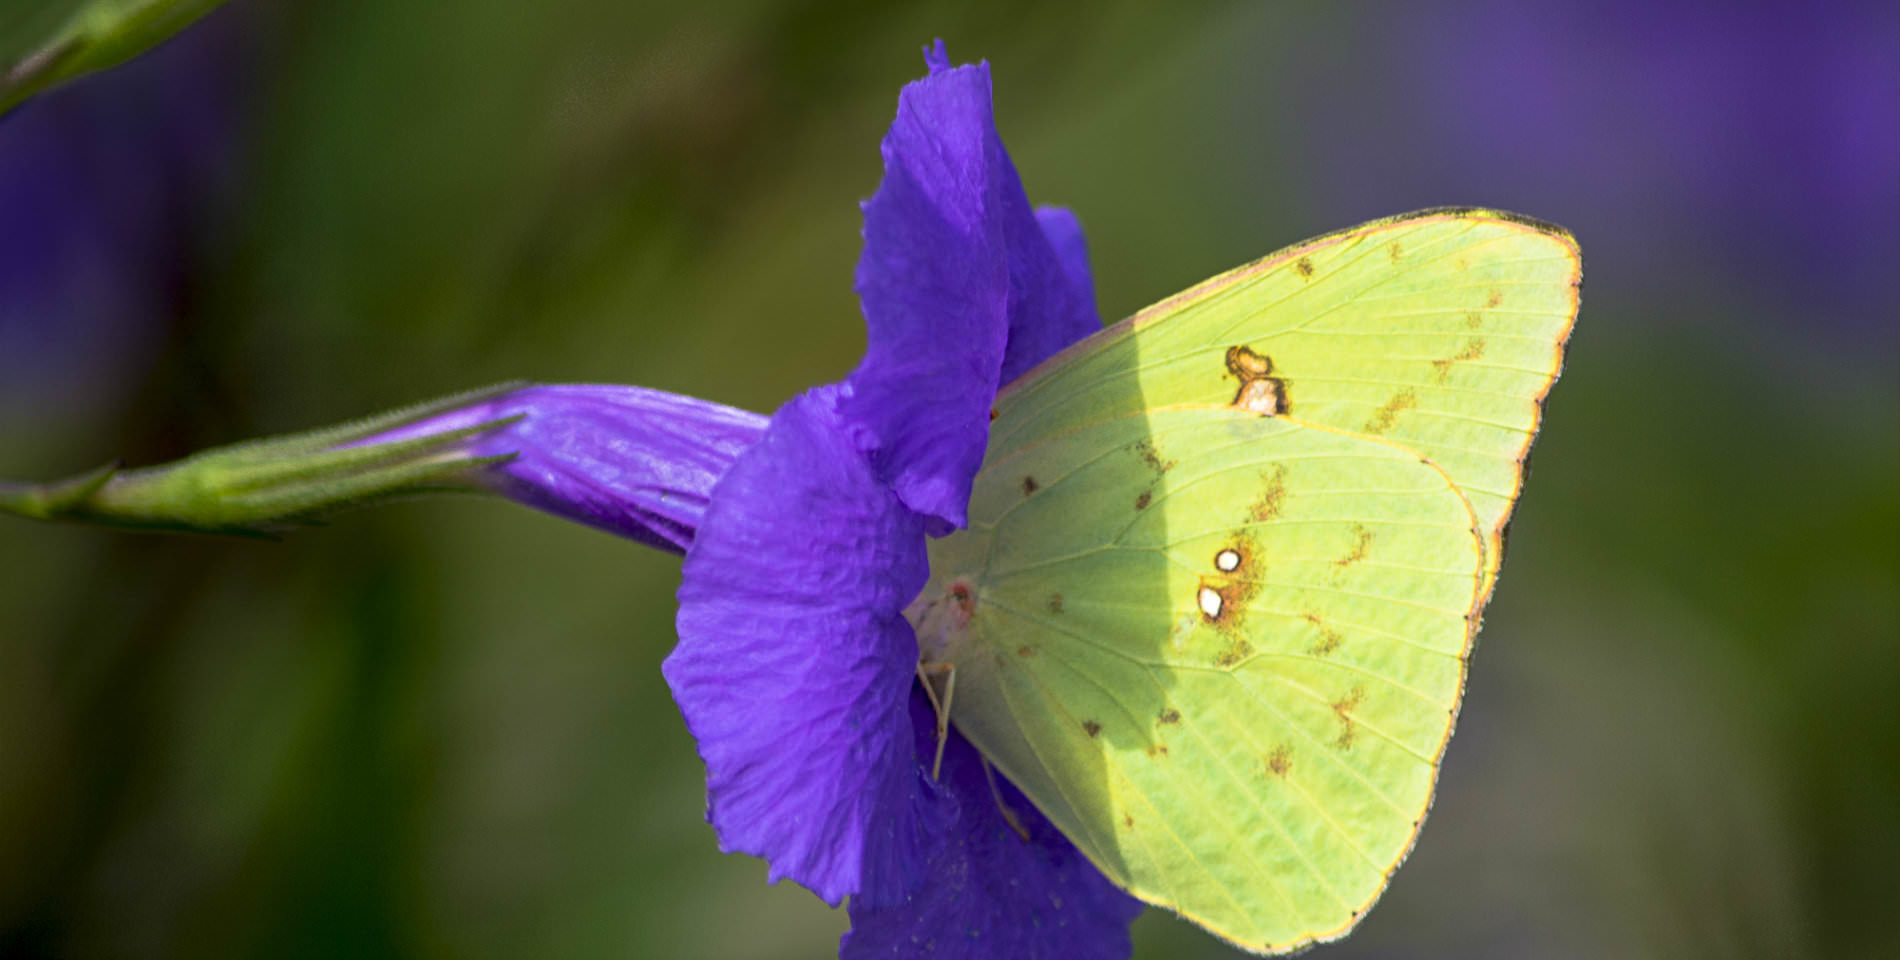 A light green winged butterfly drinks deeply from a purple flower.